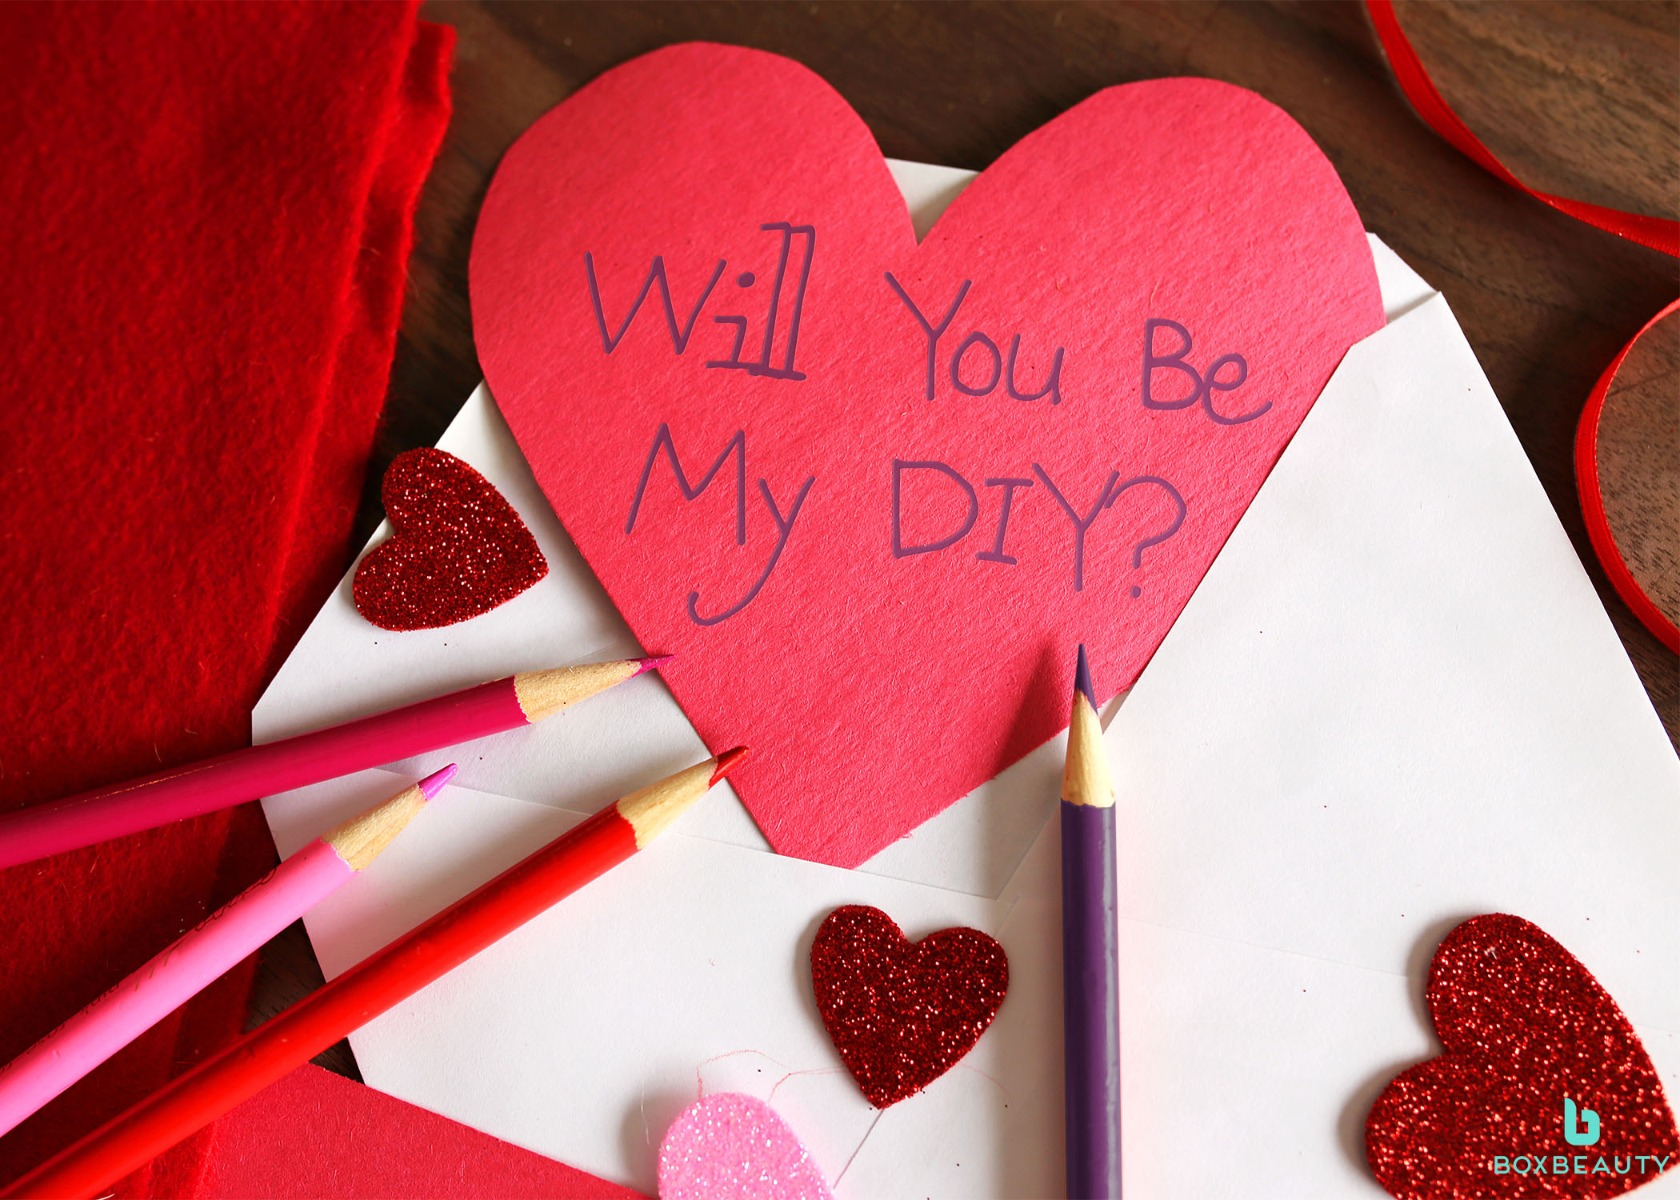 Will You Be My DIY?